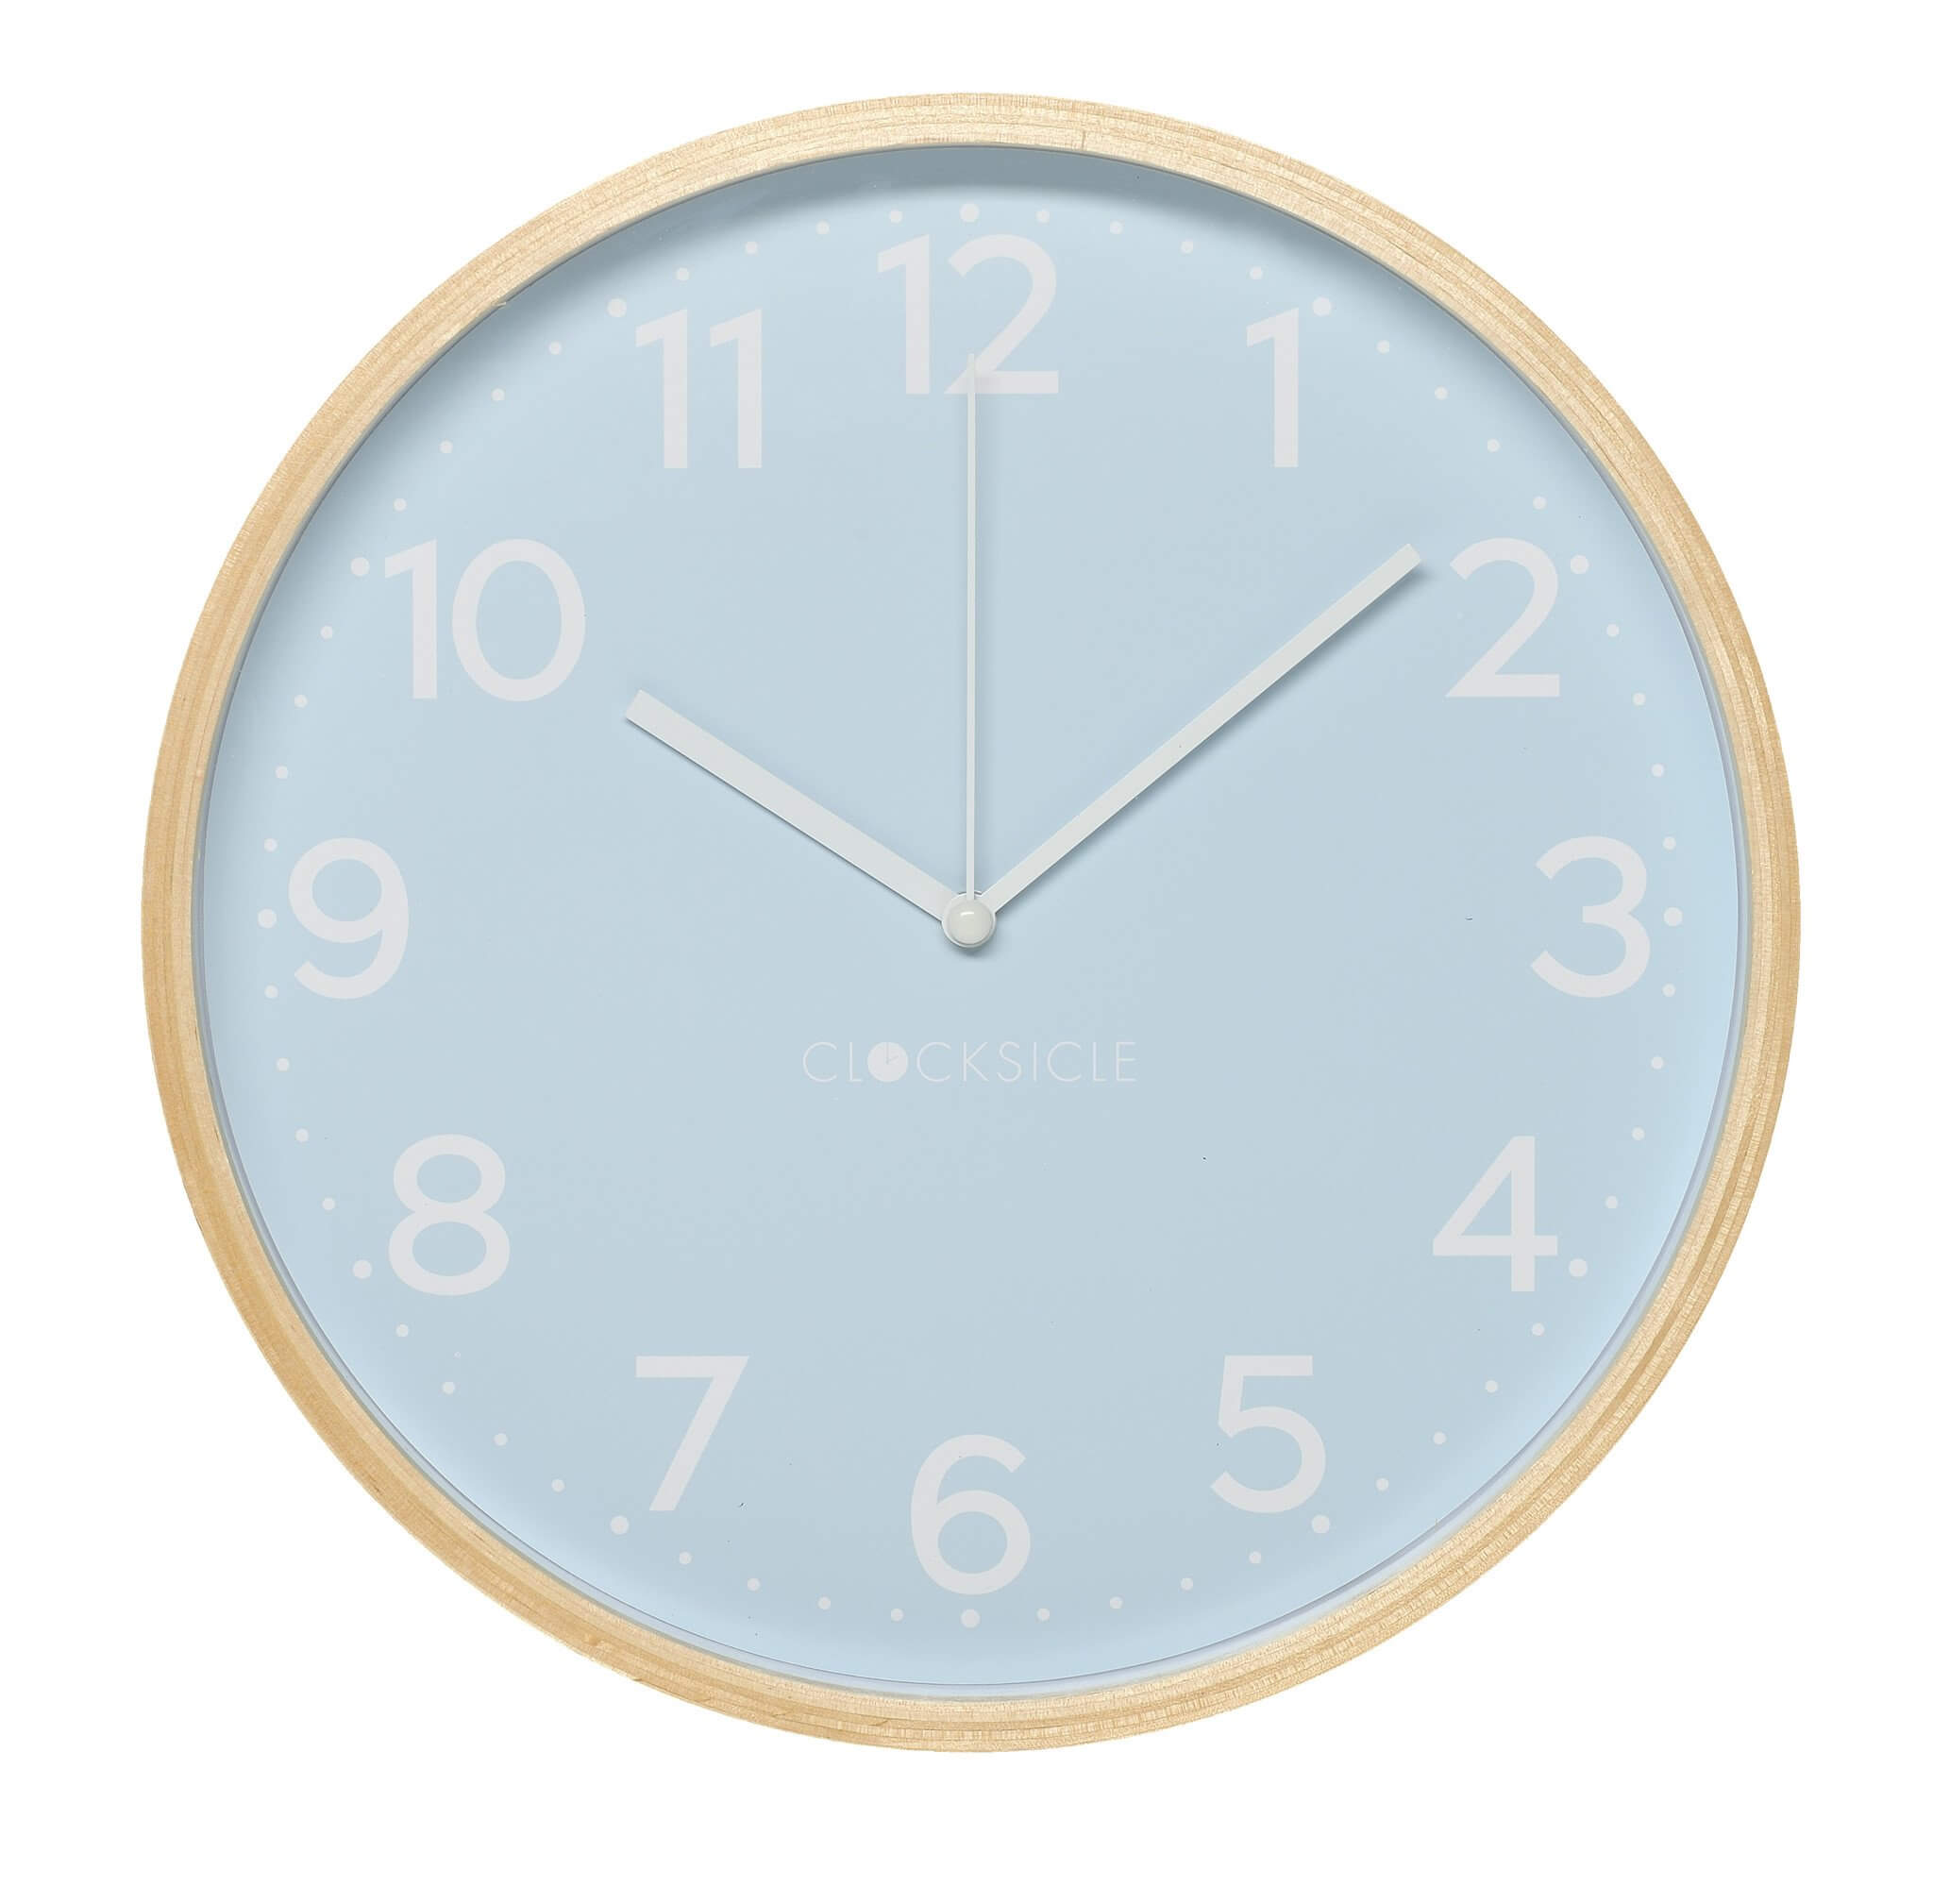 Pale Blue Children's Wall Clock with wooden rim